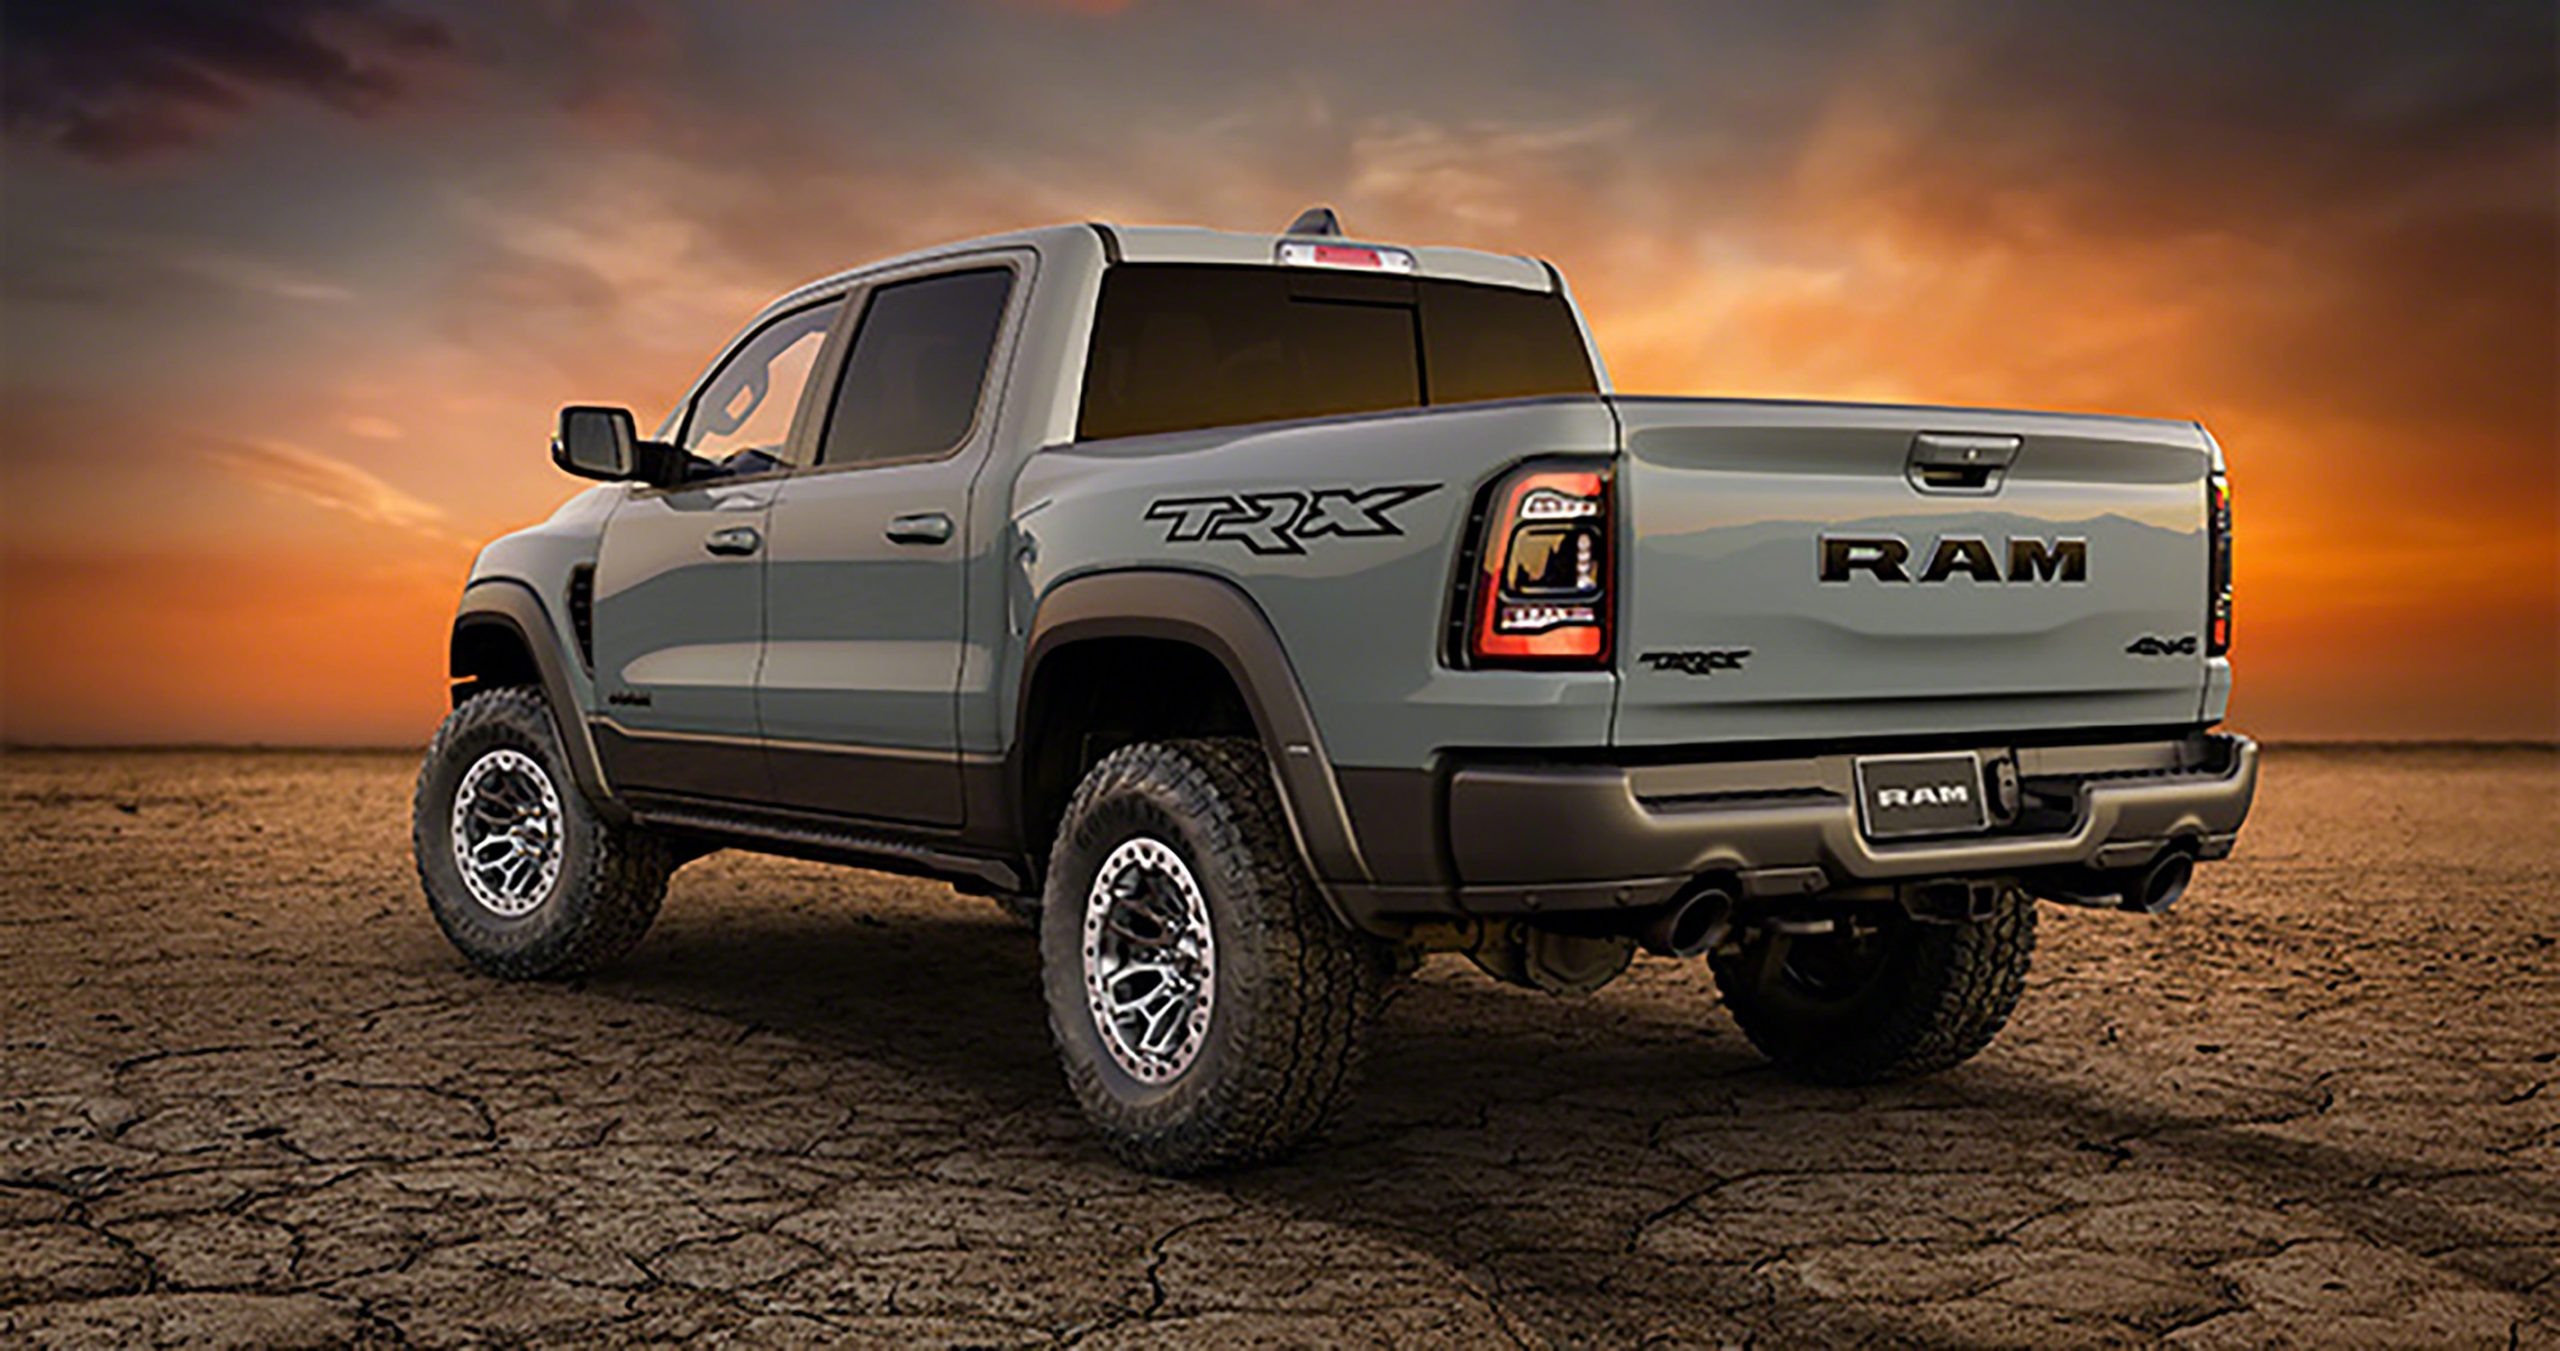 the 2021 ram 1500 trx places the ford raptor squarely